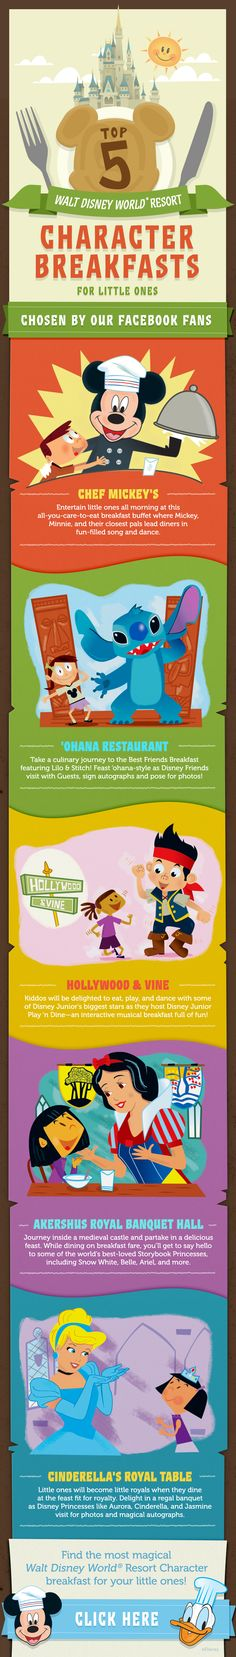 Top 5 Character Breakfasts for little ones at Walt Disney World!